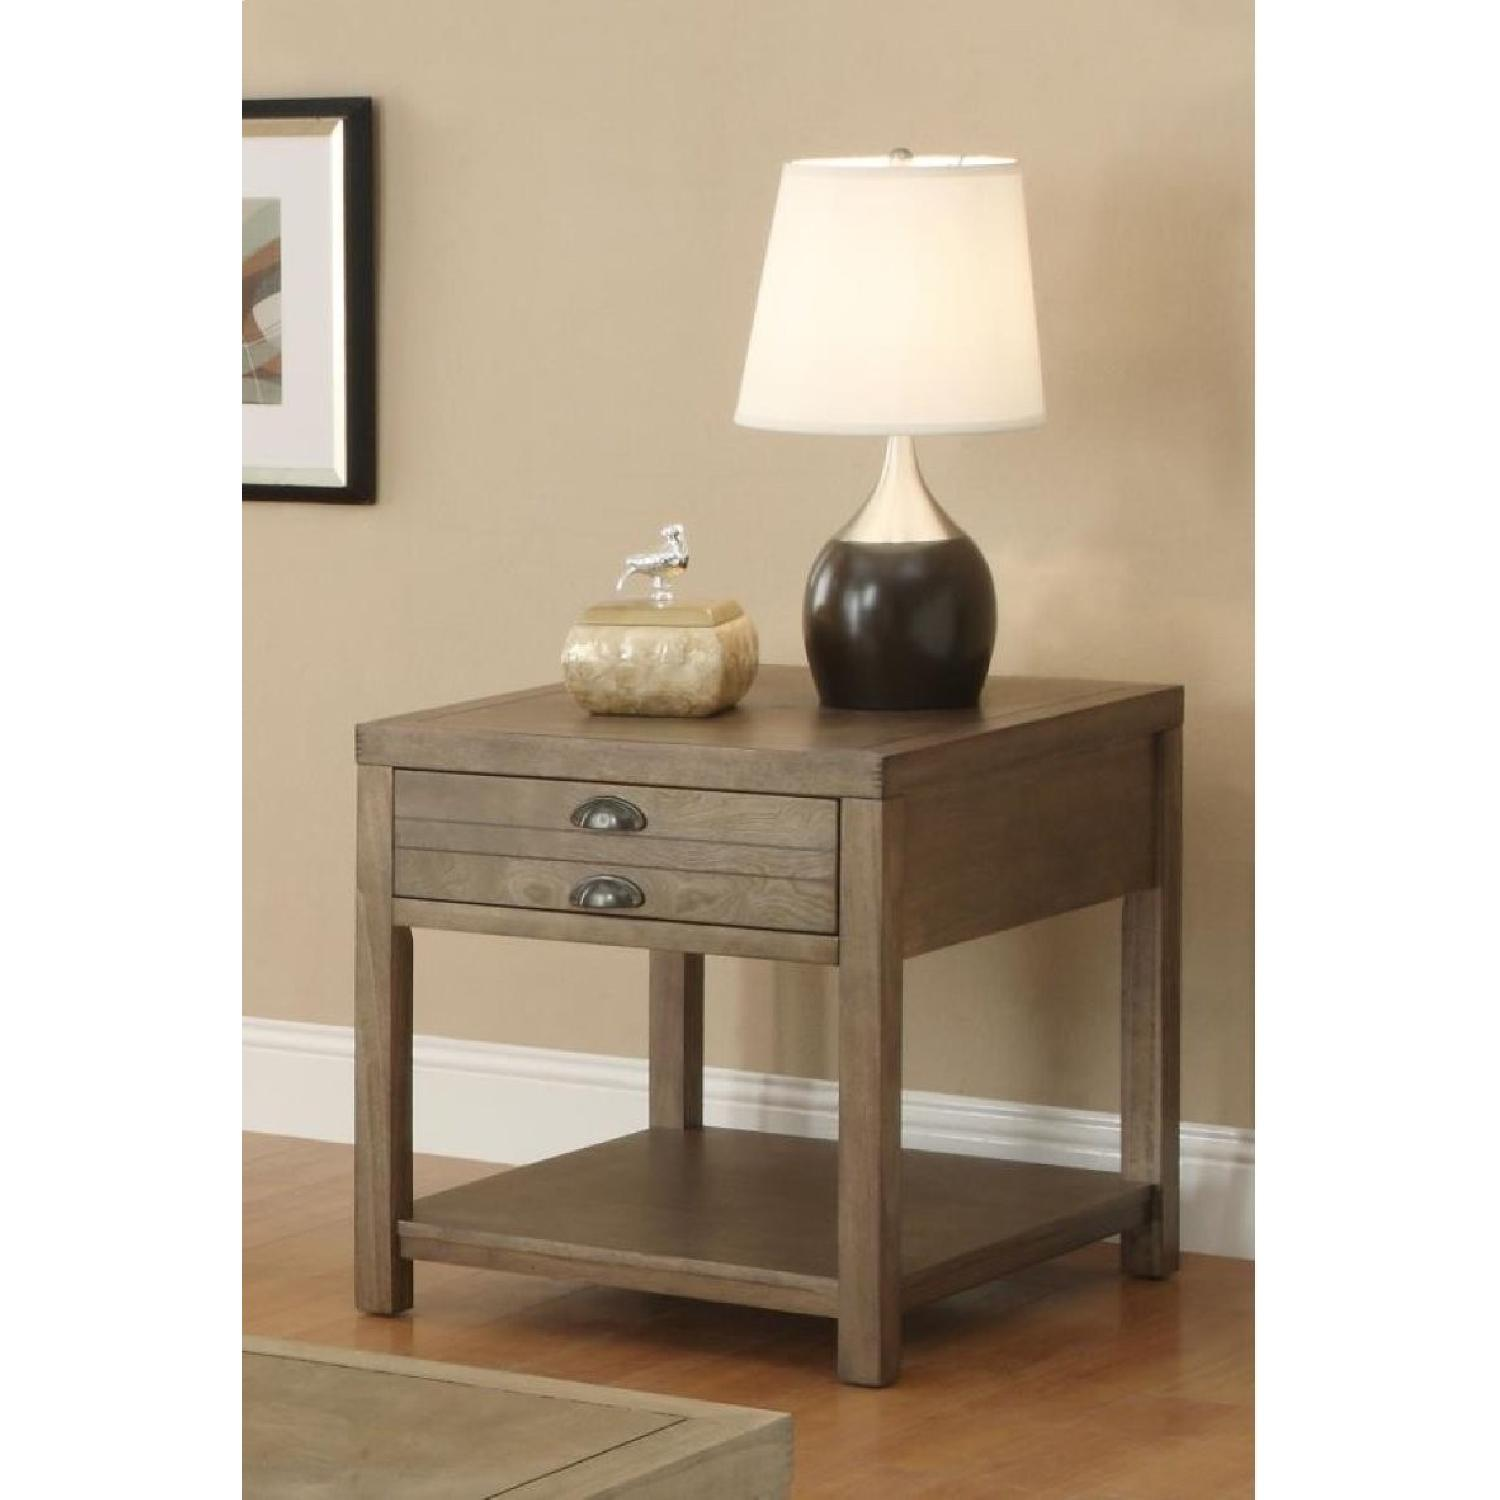 Drirtwood Craftman End Table-1